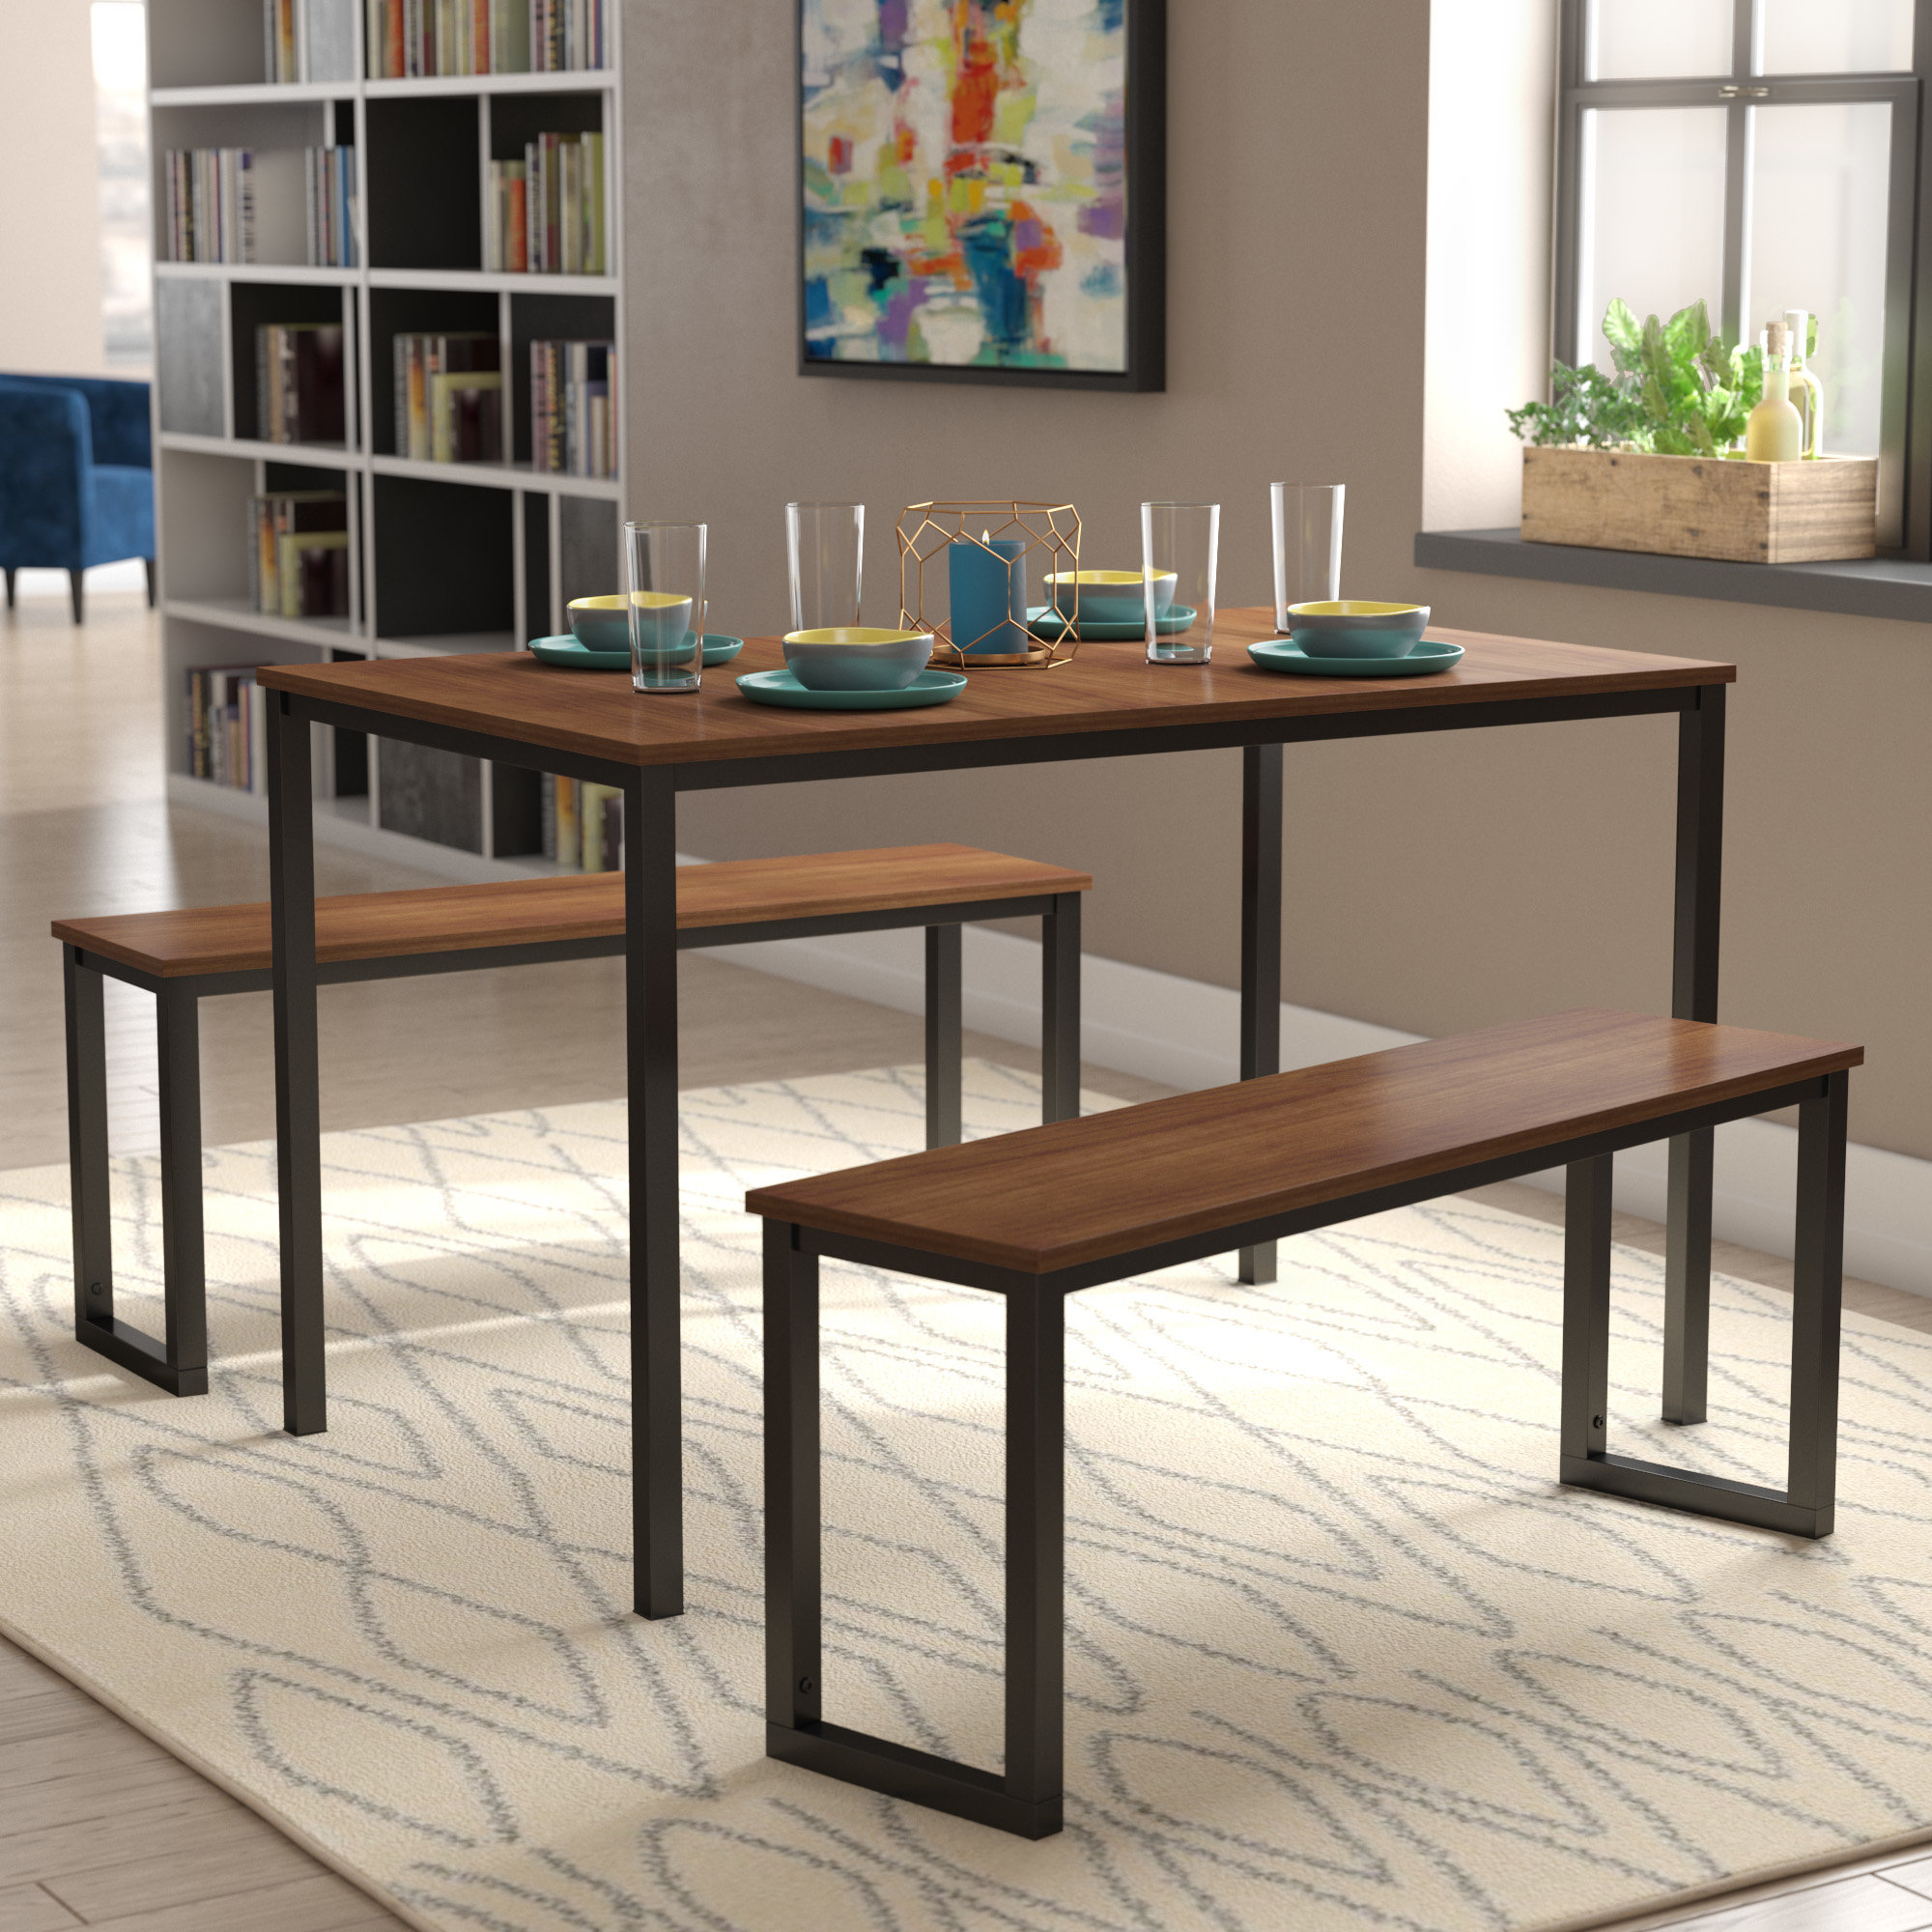 Springfield 3 Piece Dining Sets Pertaining To Most Up To Date Modern Rustic Interiors Frida 3 Piece Dining Table Set & Reviews (#15 of 20)